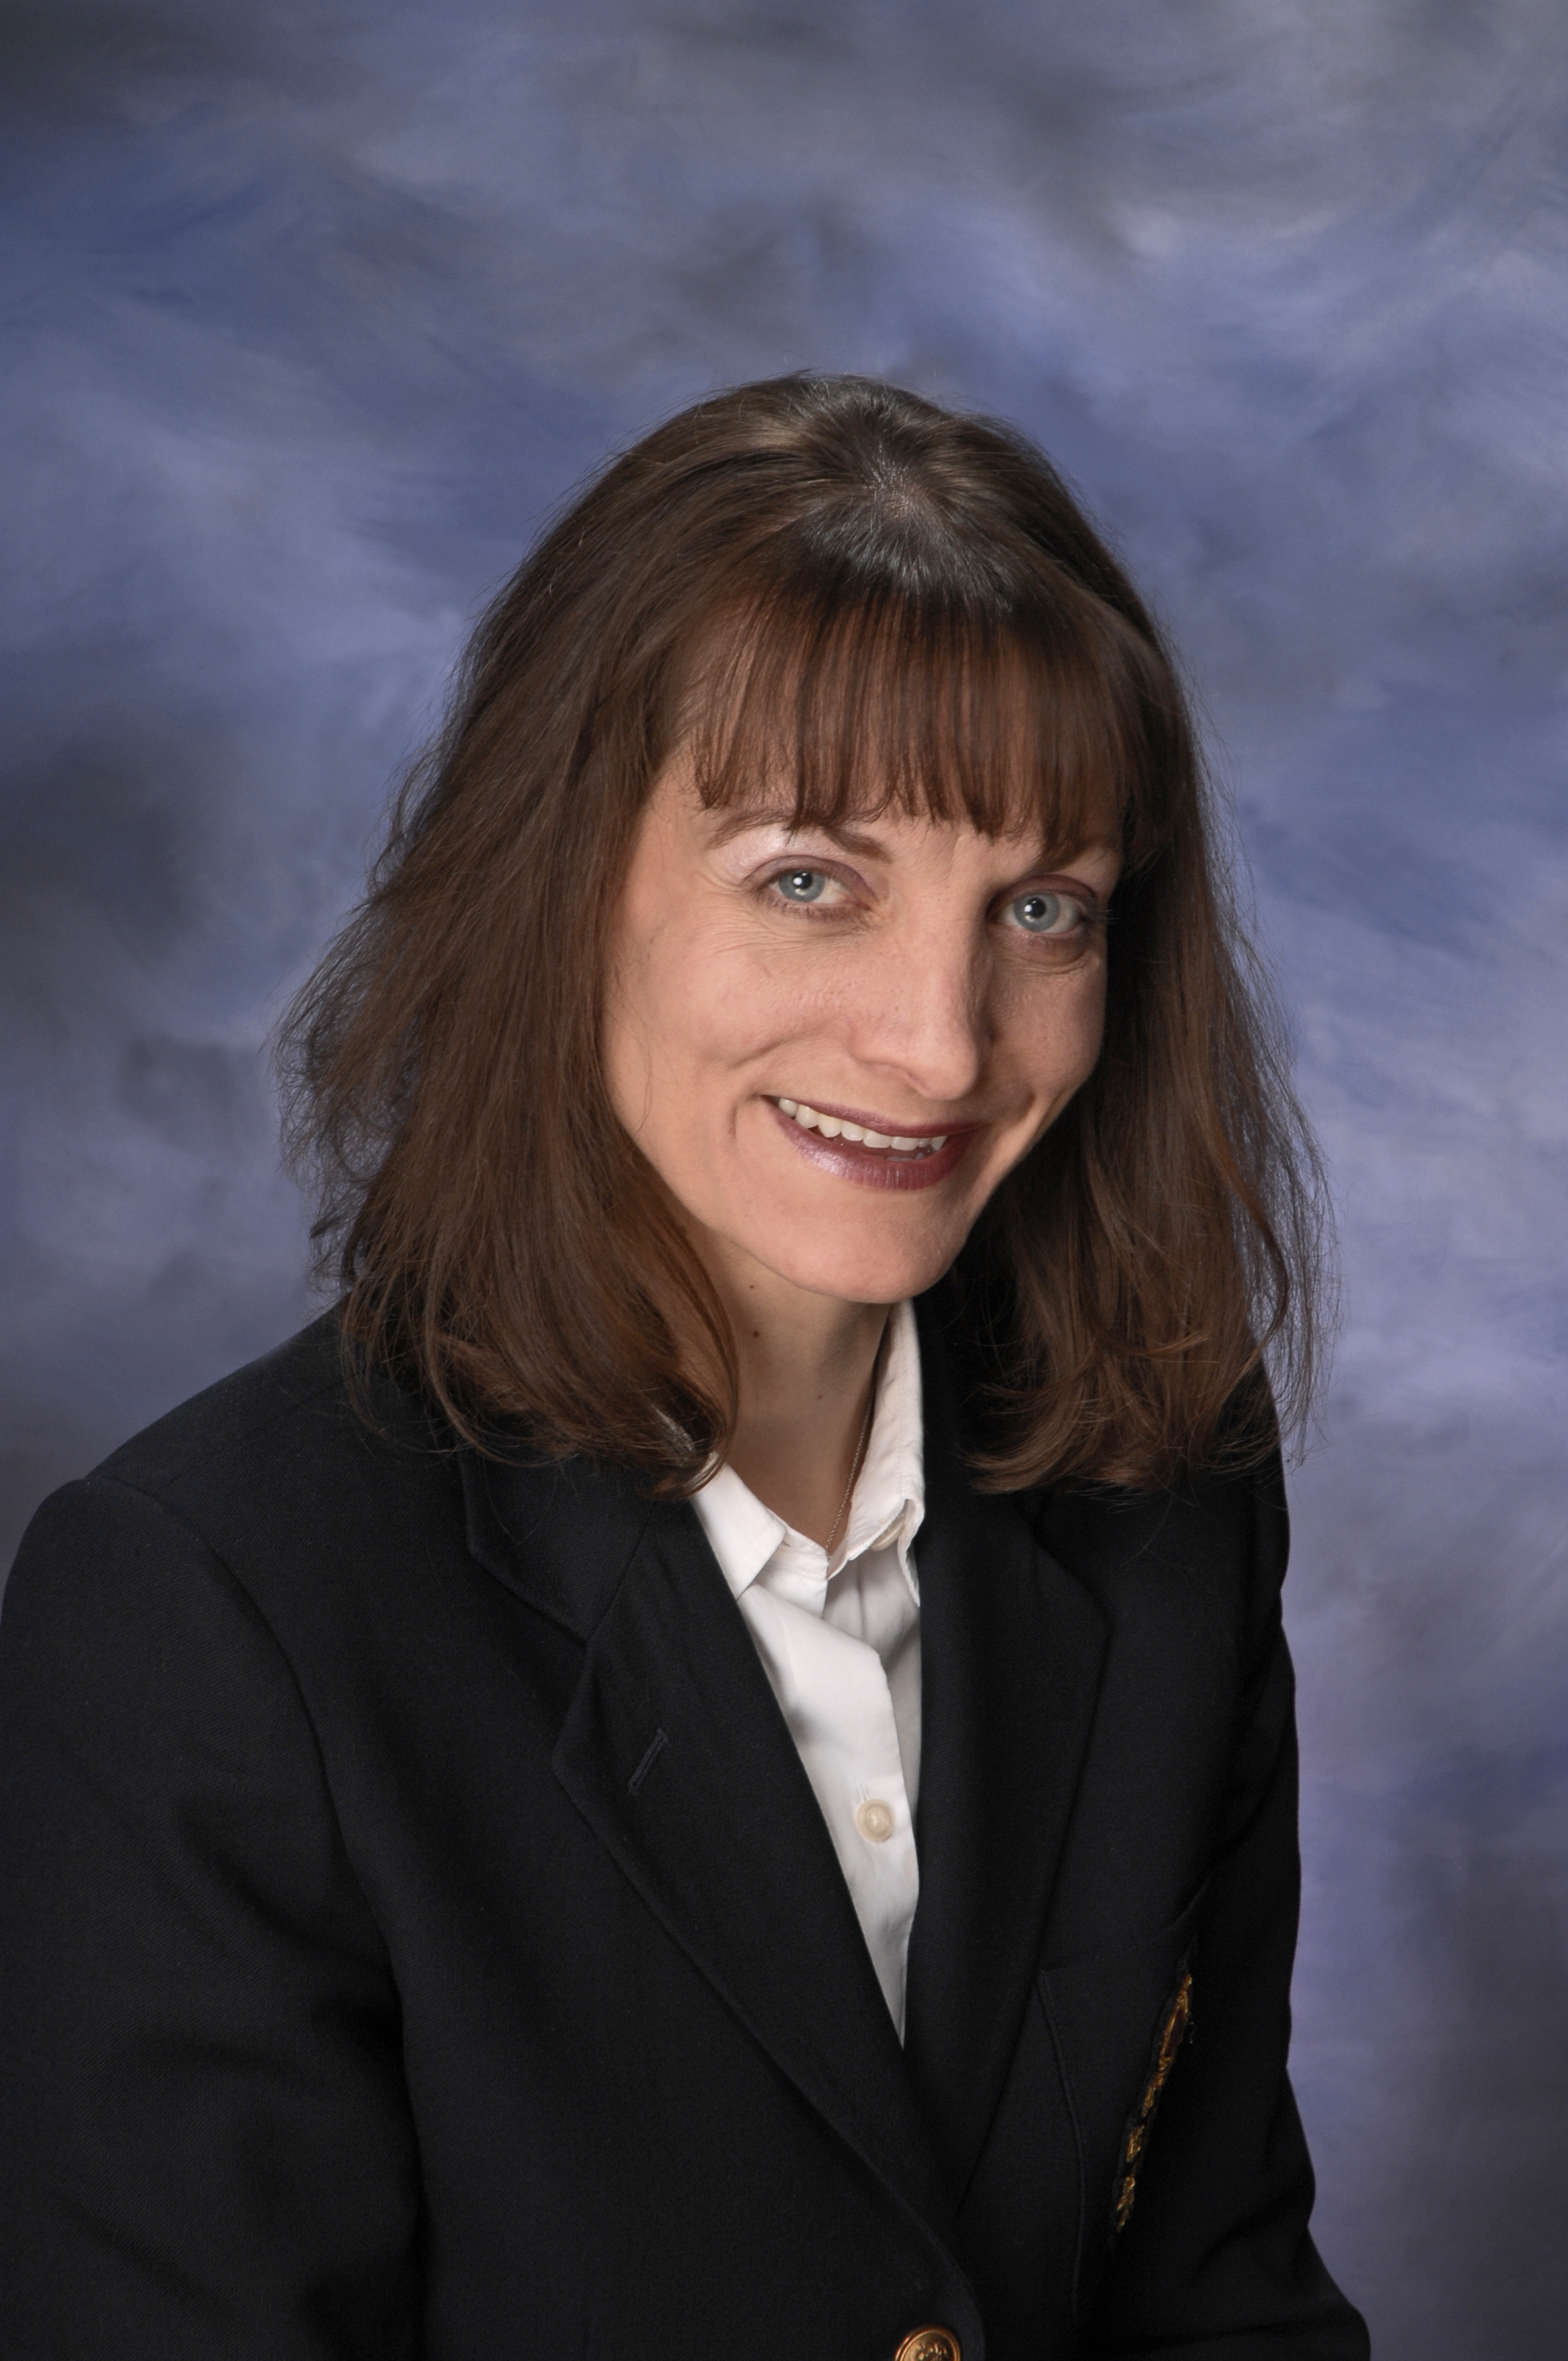 Heidi Foster, financial advisor Incline Village NV